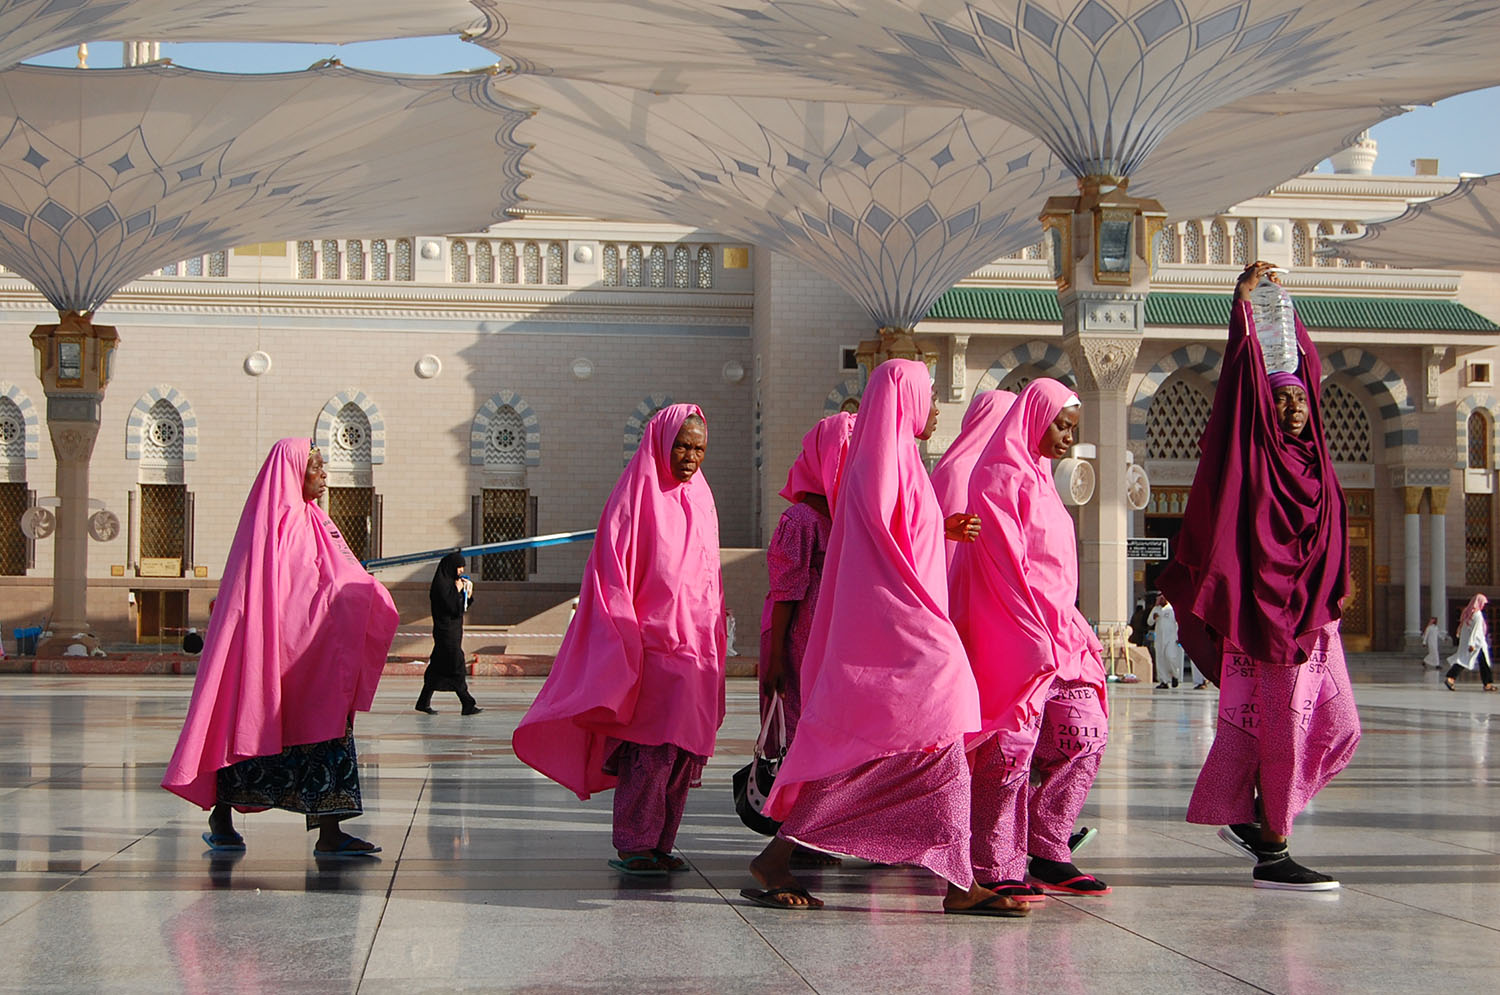 Like many, these African women pilgrims adopt a unique color code so they can find each other amongst millions.